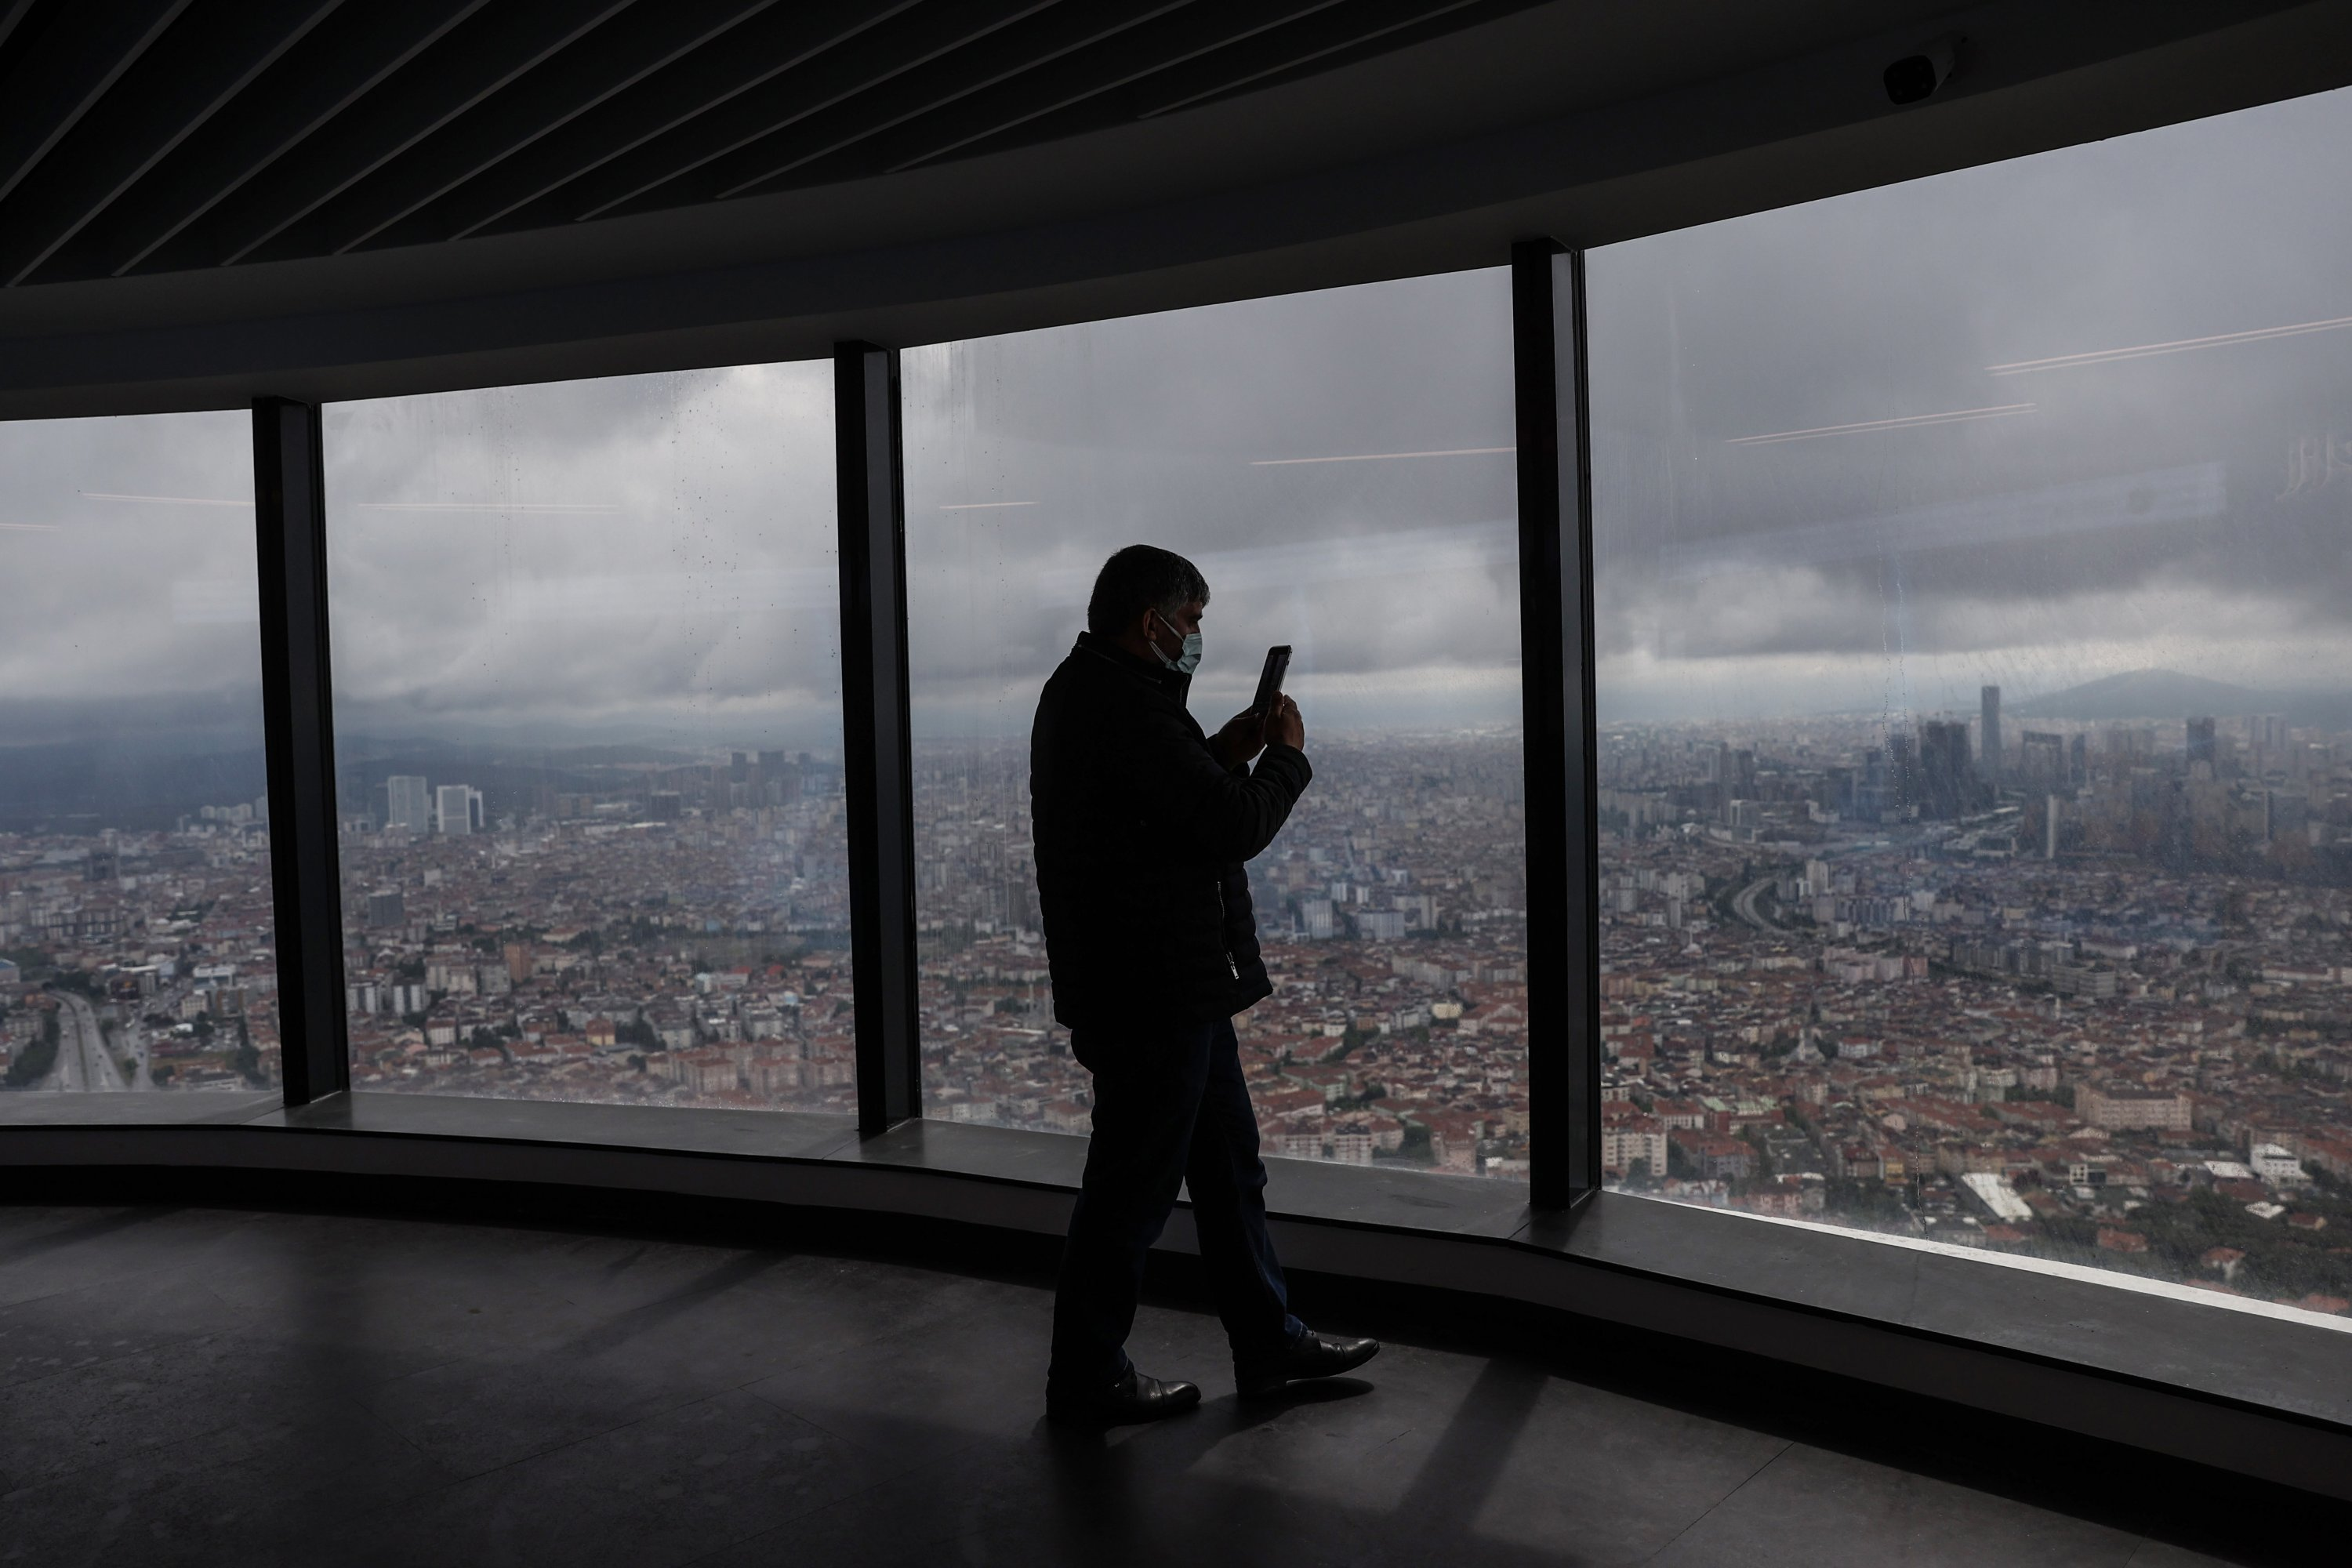 A visitor takes a photo at an observation deck at the Çamlıca Tower in Üsküdar, Istanbul, Turkey, June 1, 2021.